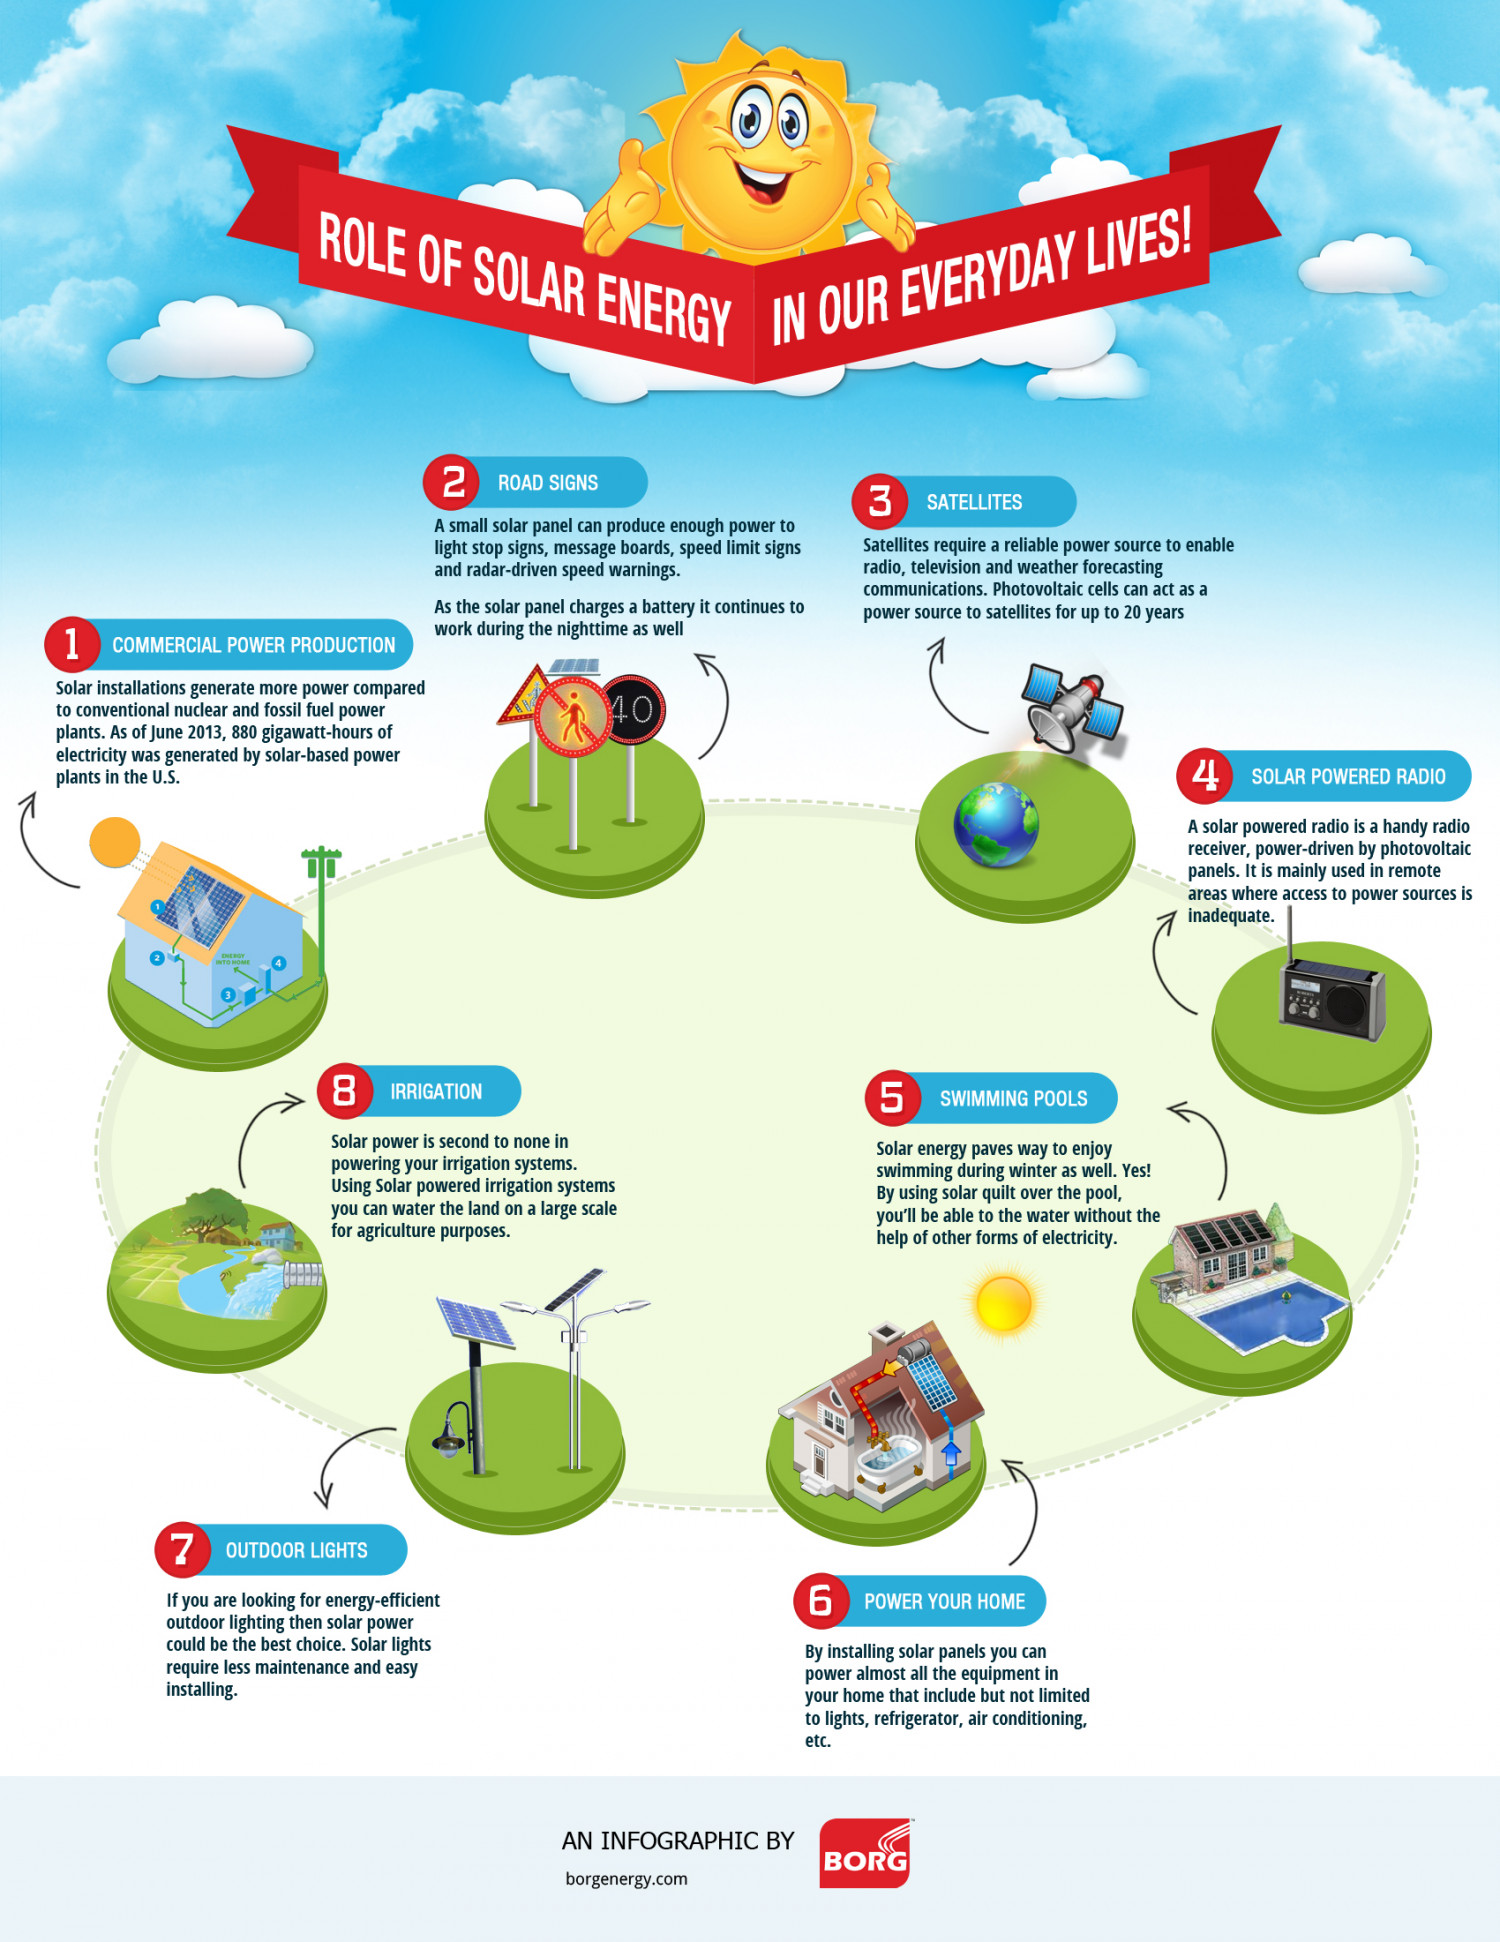 An Infographic on The Influence of Solar Energy in Our Lives Infographic